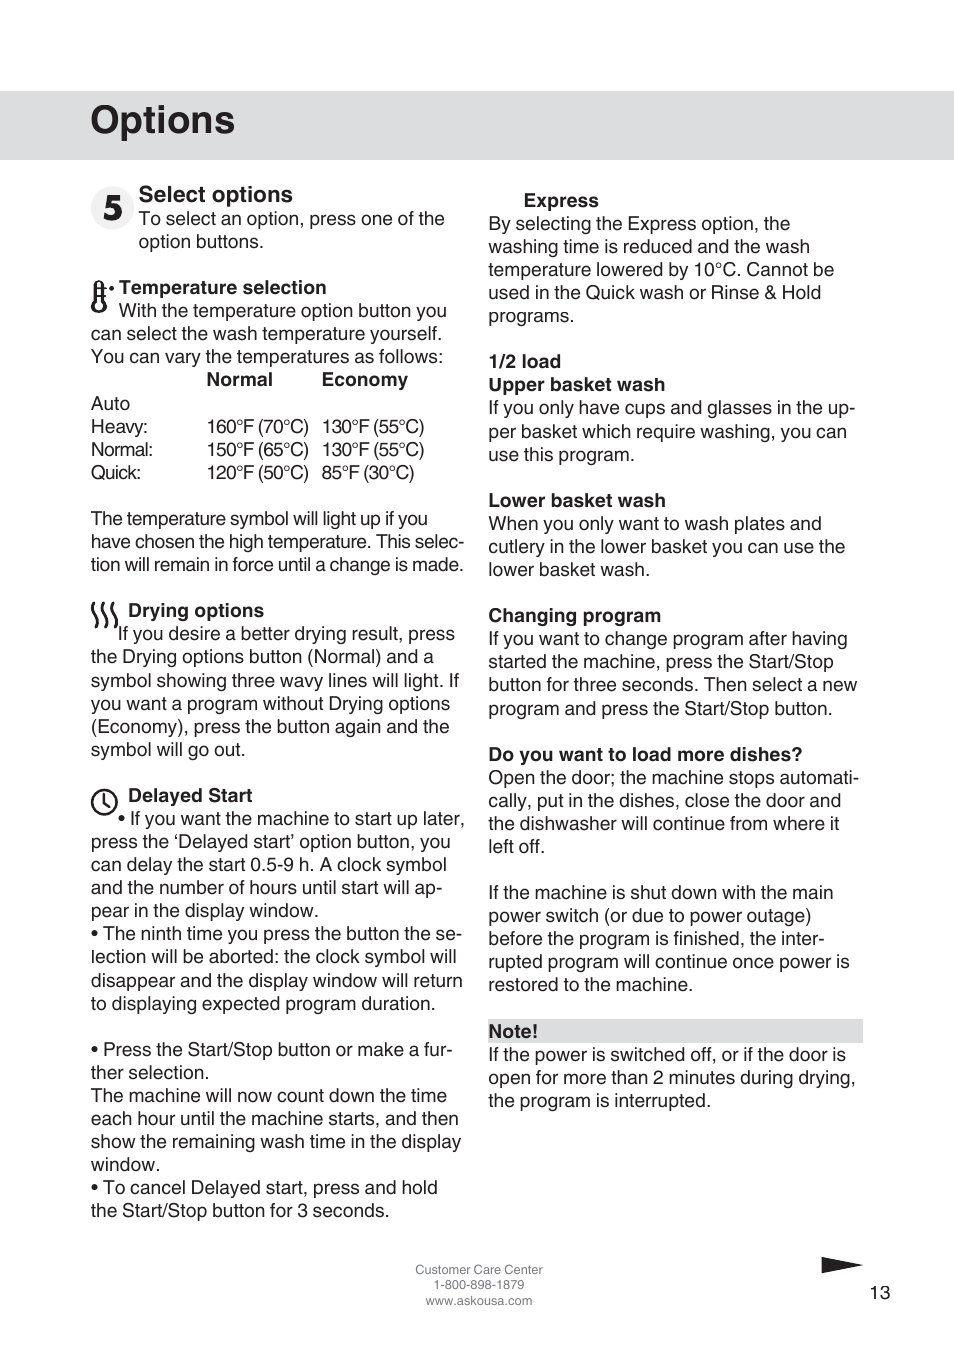 Options | ASKO D3152 User Manual | Page 13 / 28